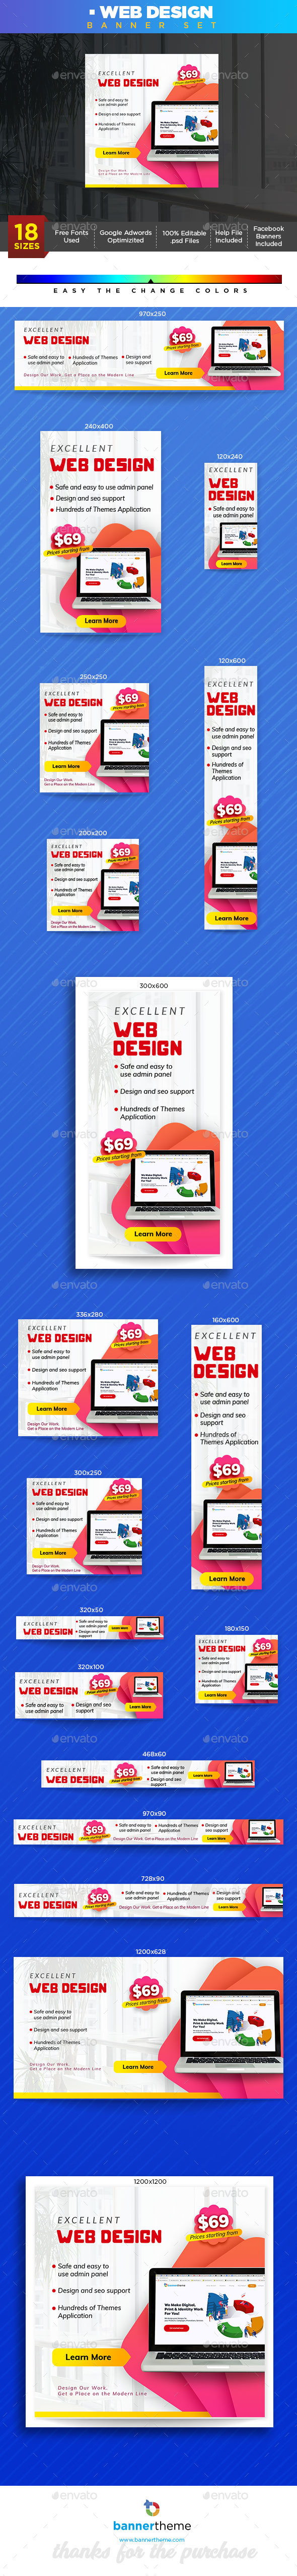 Web Design Banner - Banners & Ads Web Elements